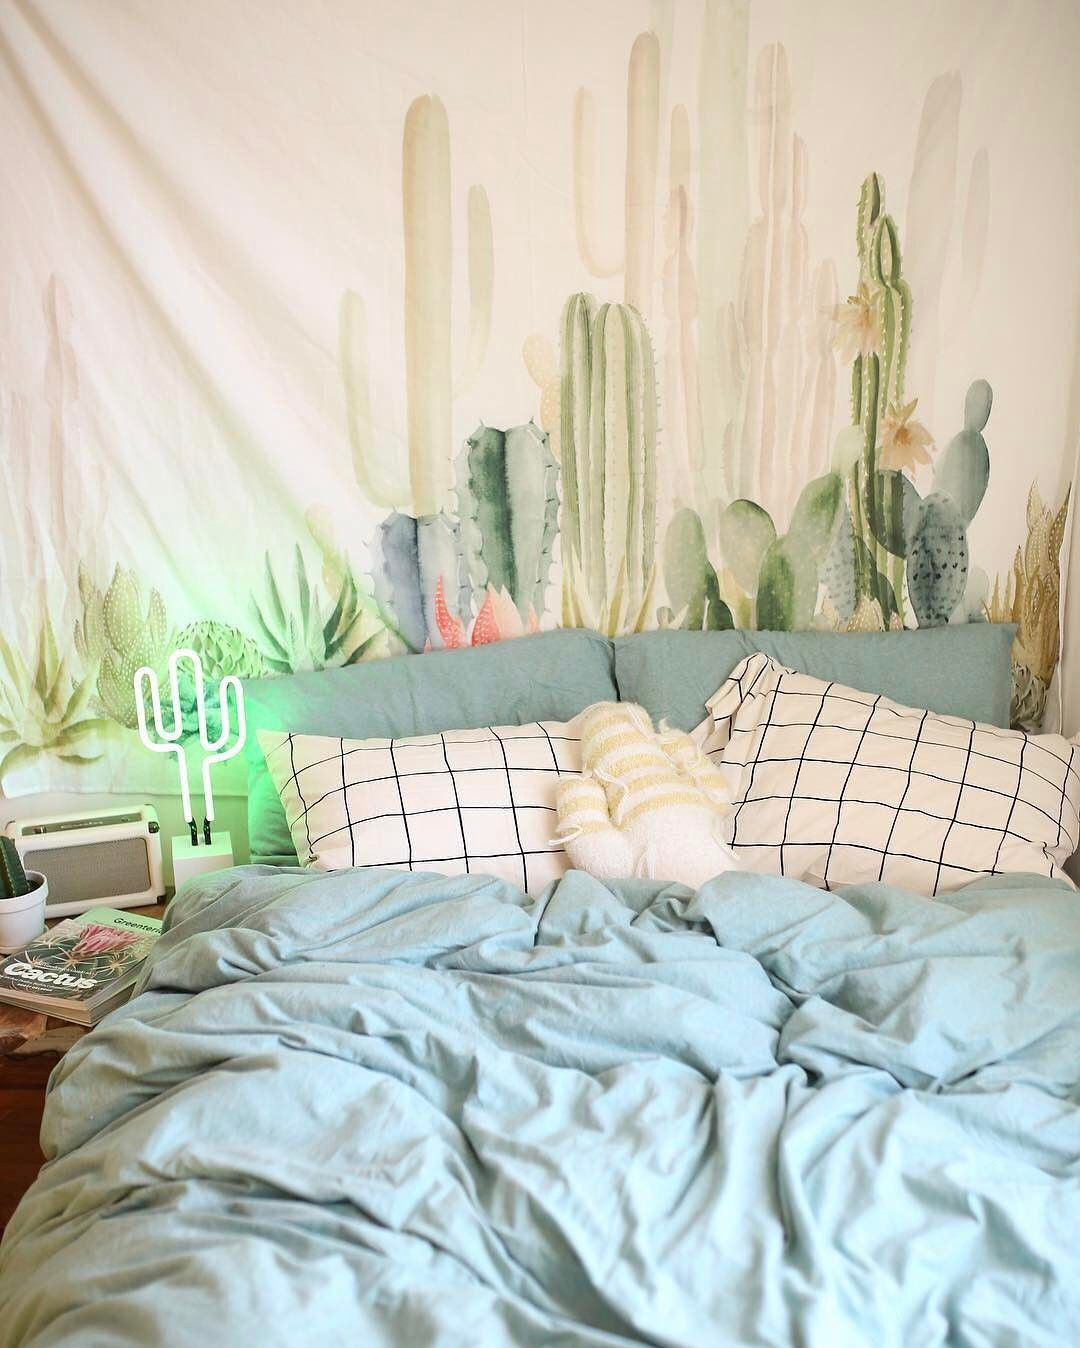 Urban outfitters bedroom tapestry - Urban Outfitters Home New York No Maintenance Required For These Cacti